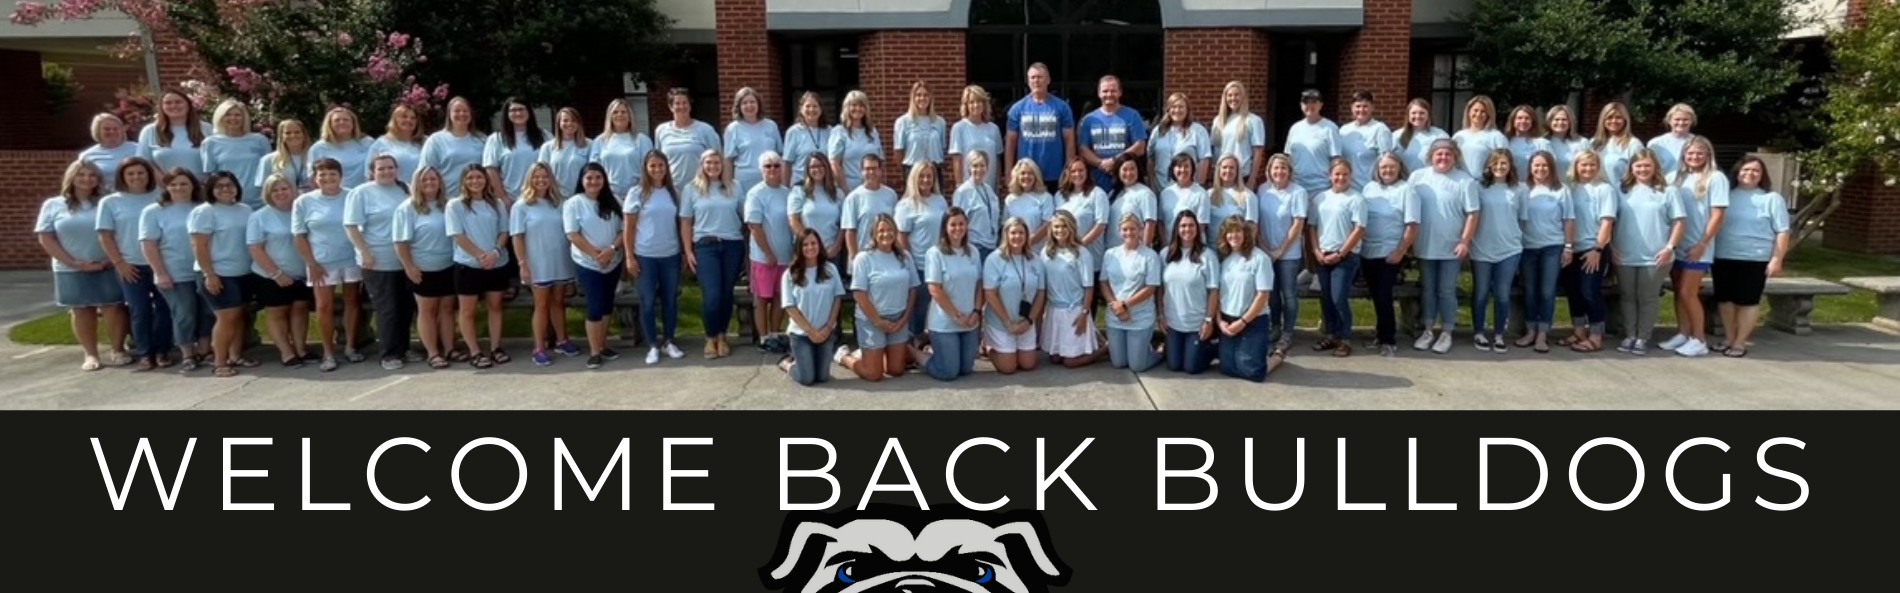 TES STAFF PICTURE